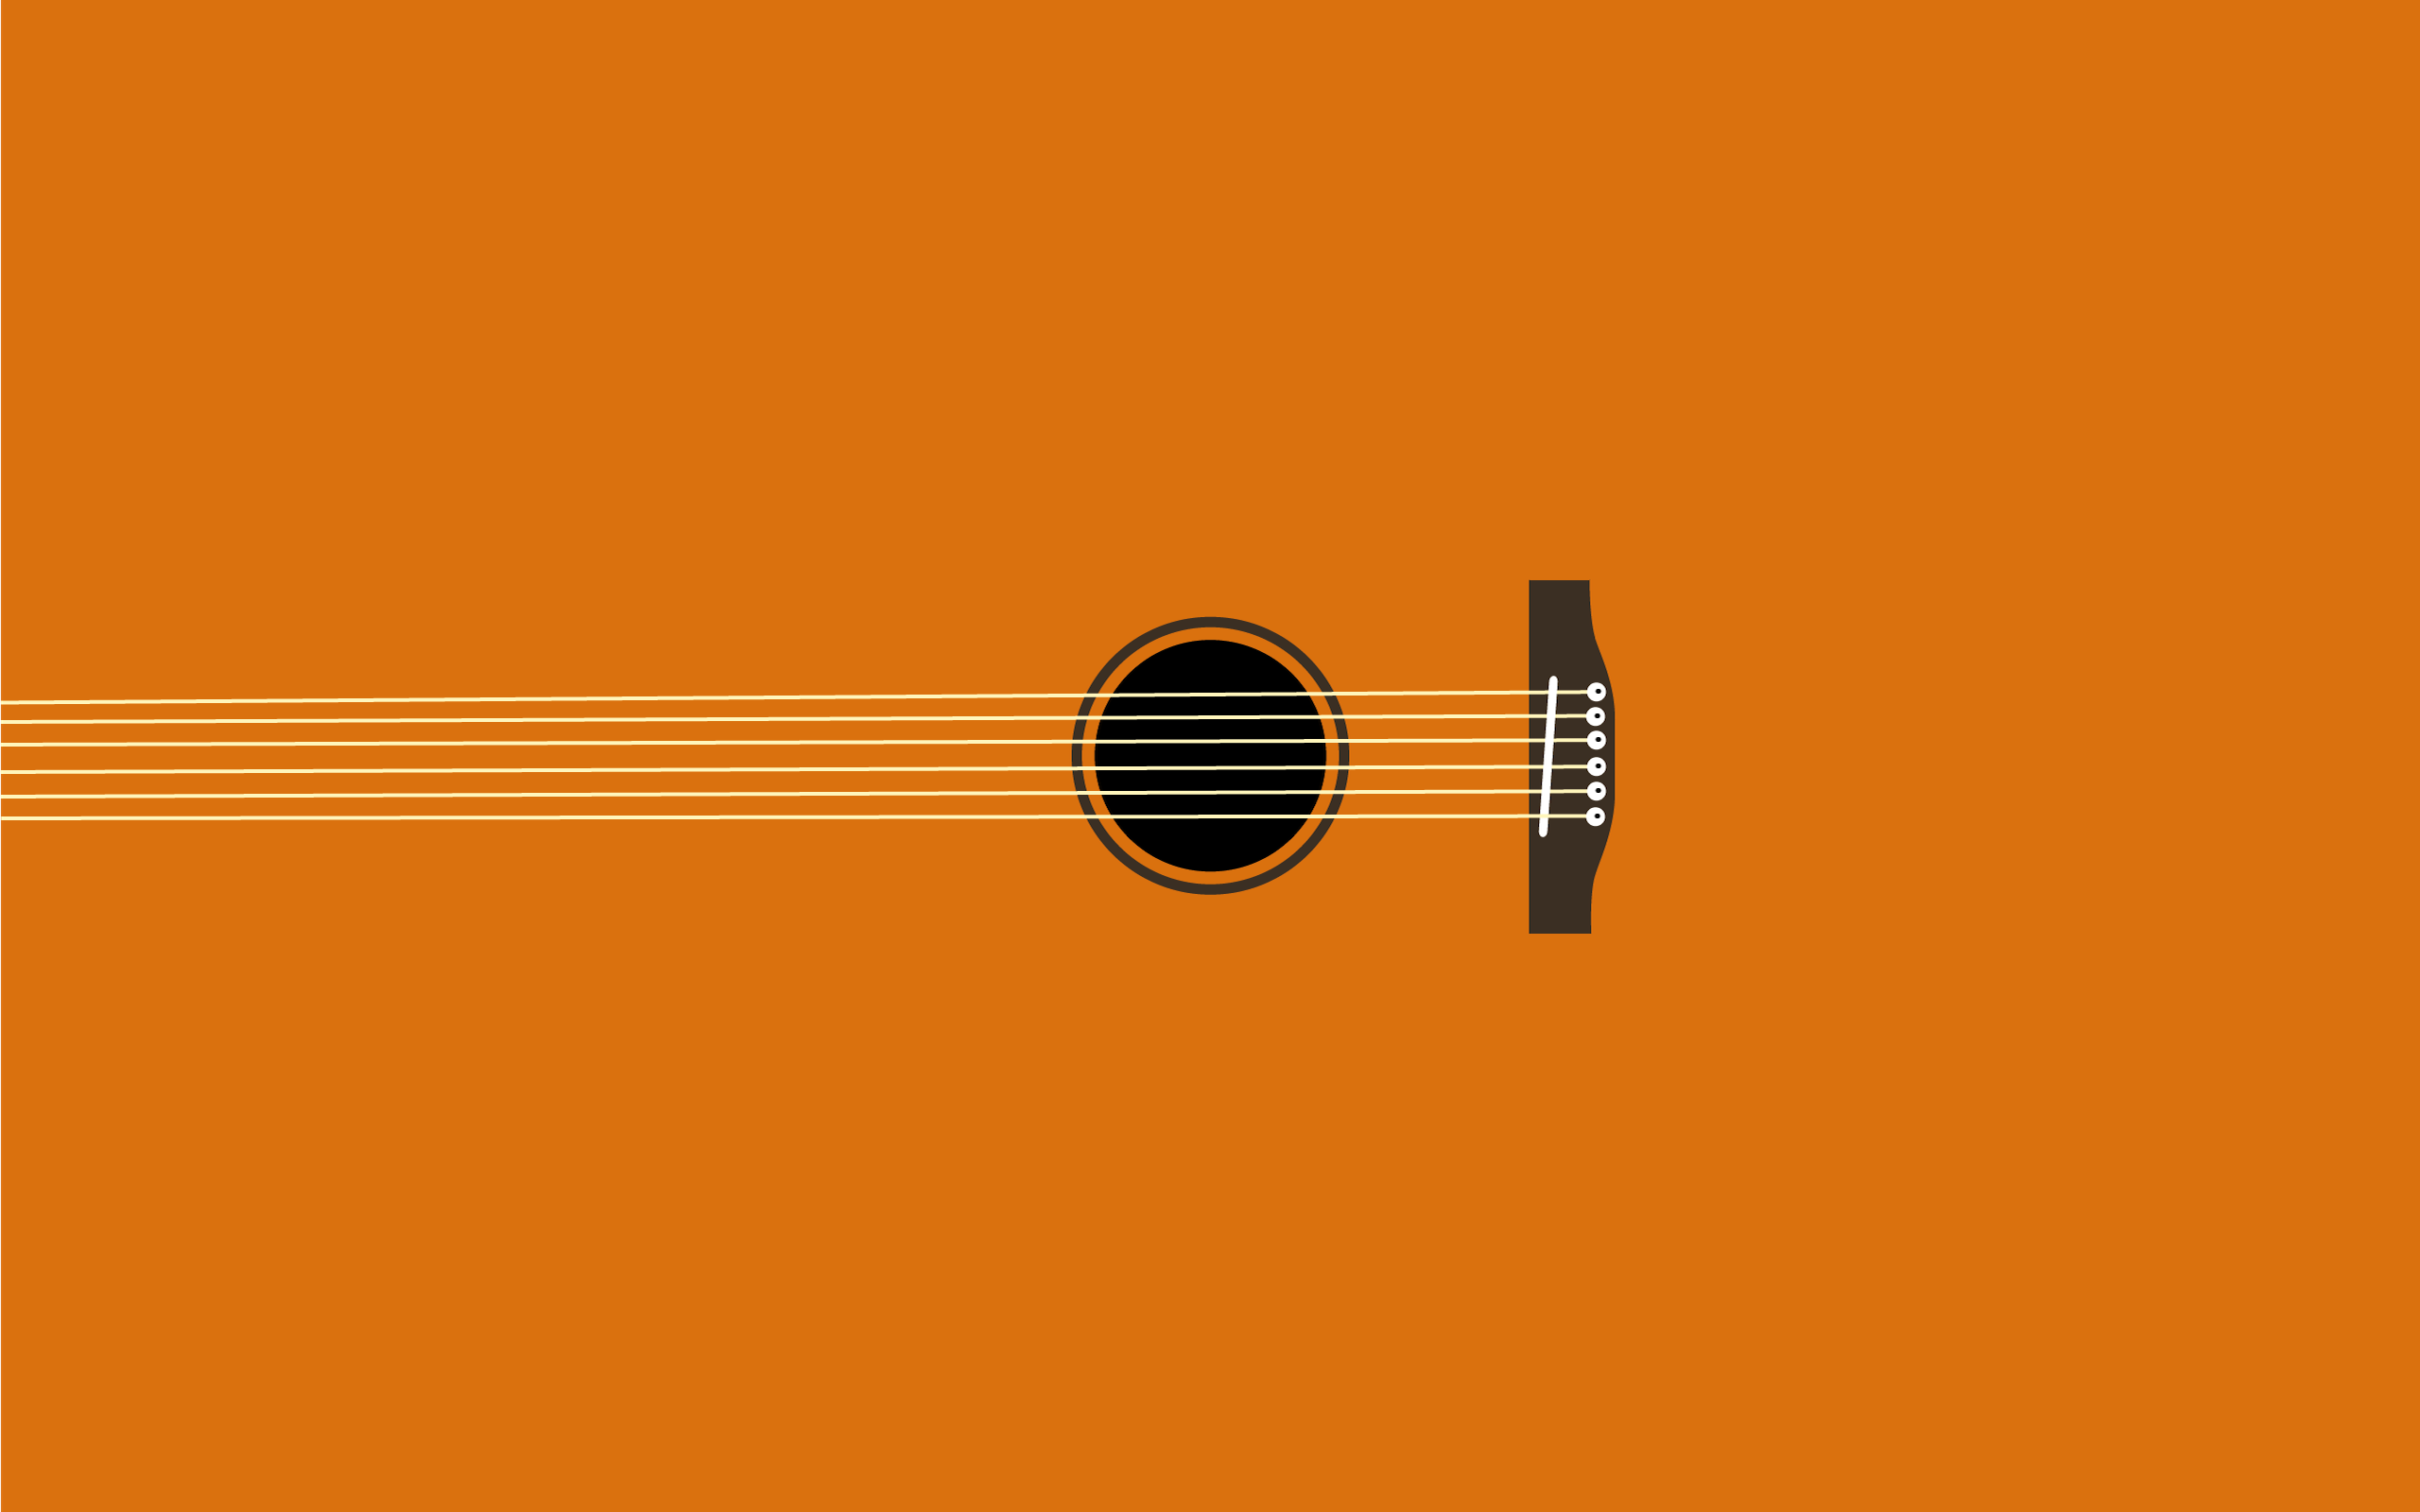 agx31 acoustic guitar wallpaper px tea